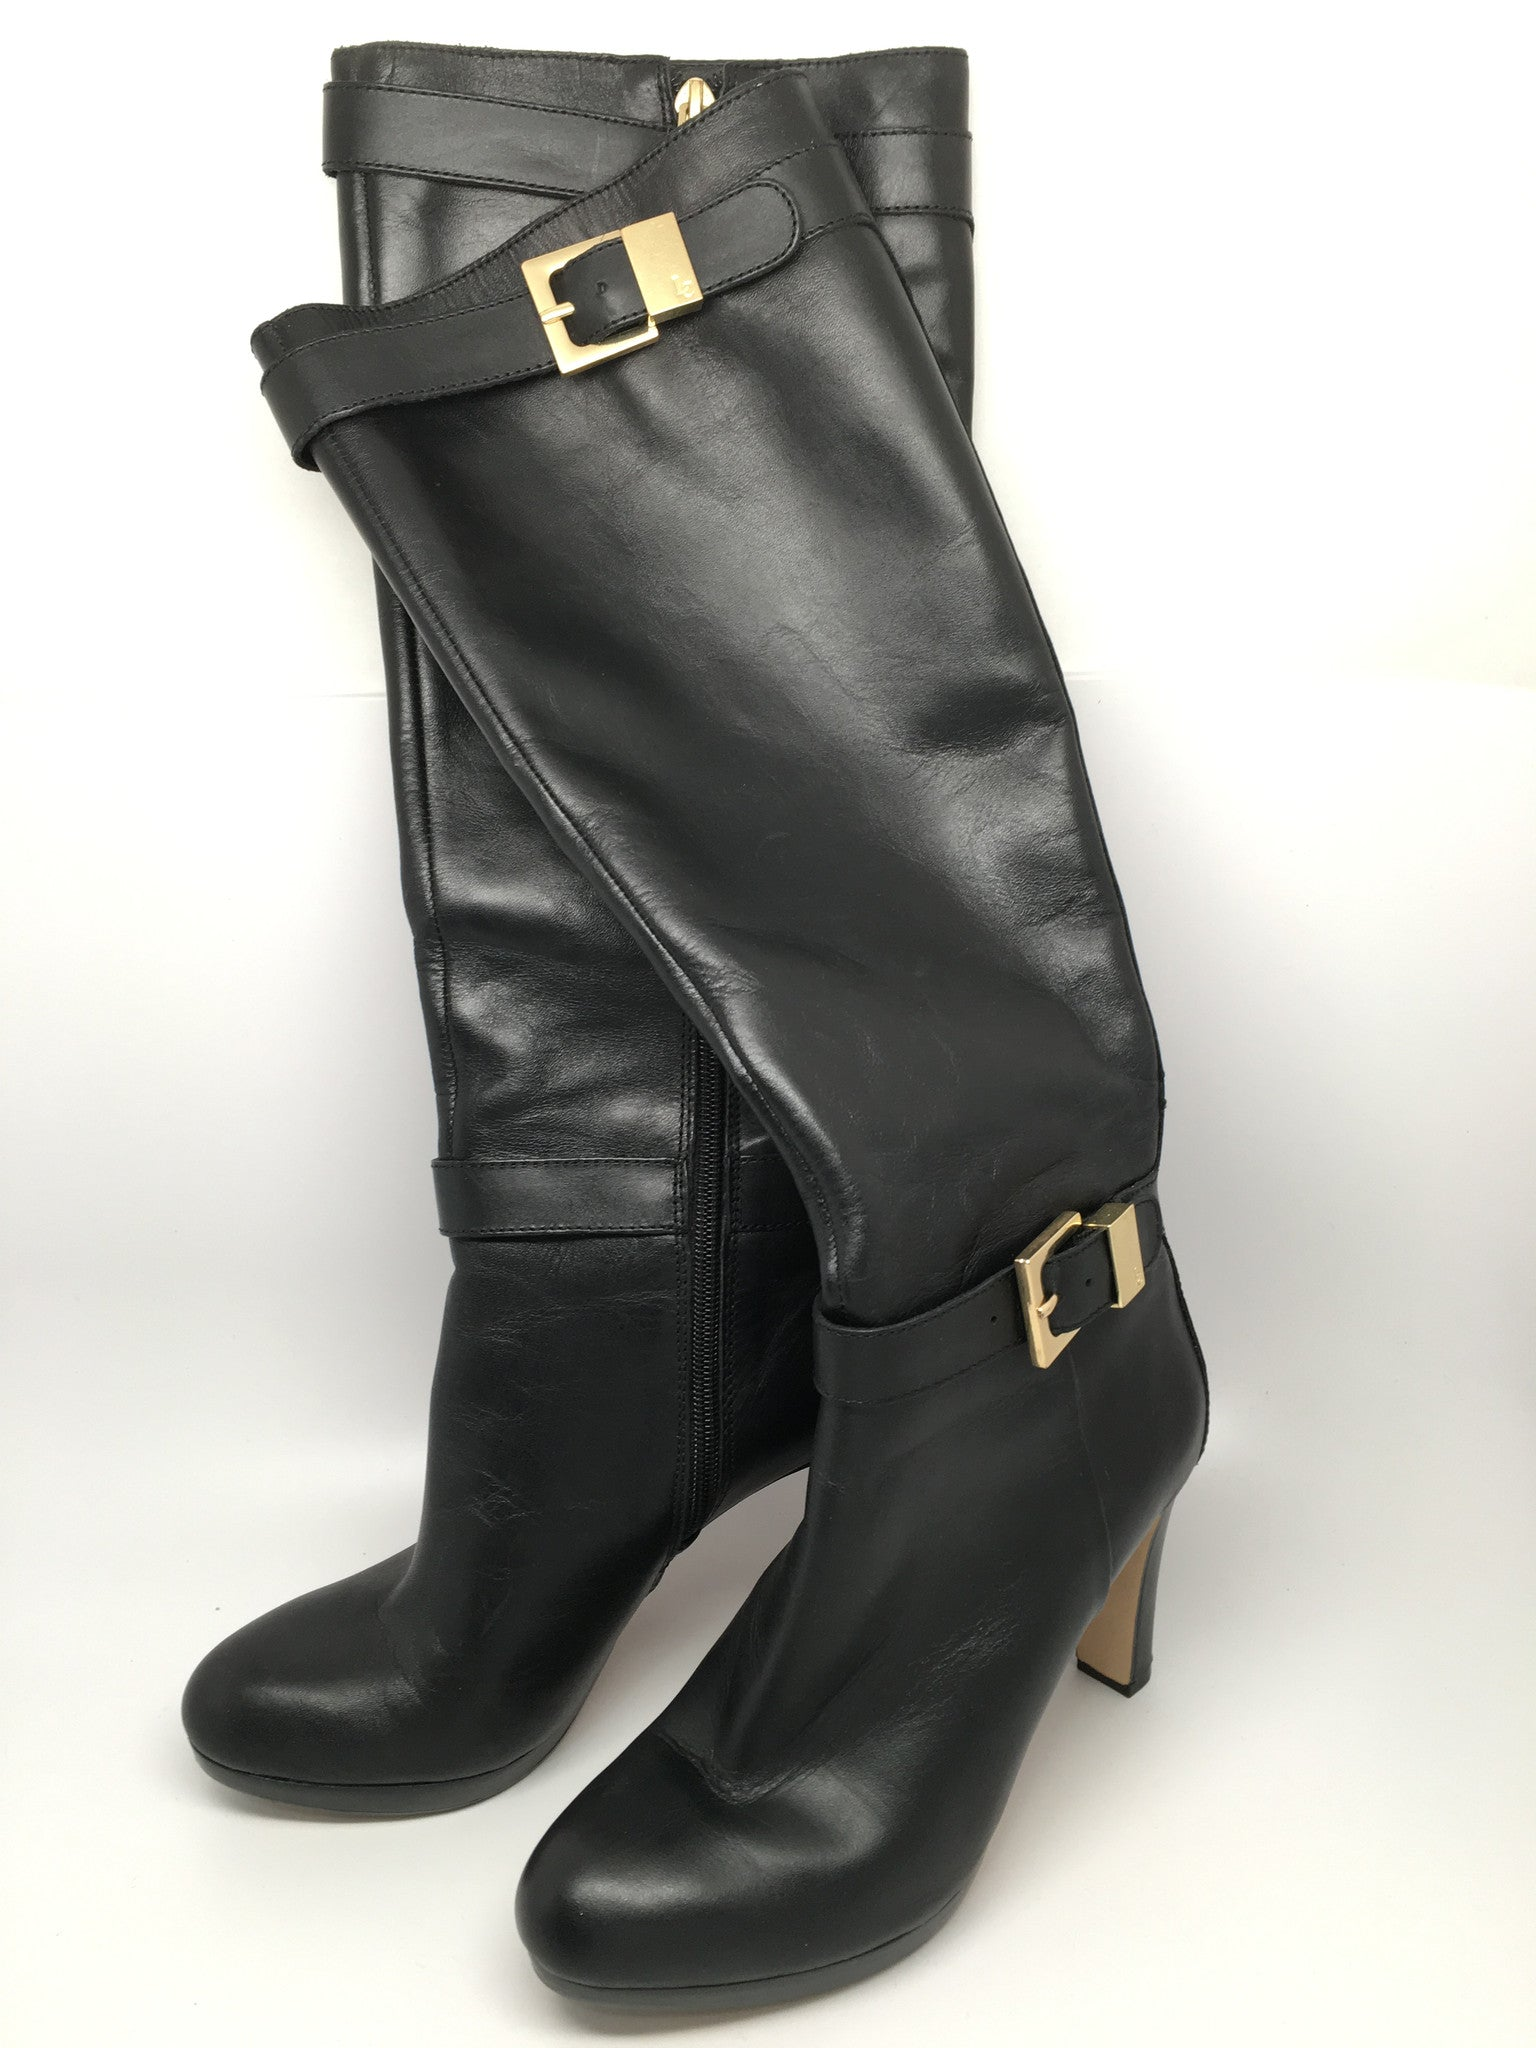 NEW LOUISE ET CIE LURISIA BOOT SIZE 36